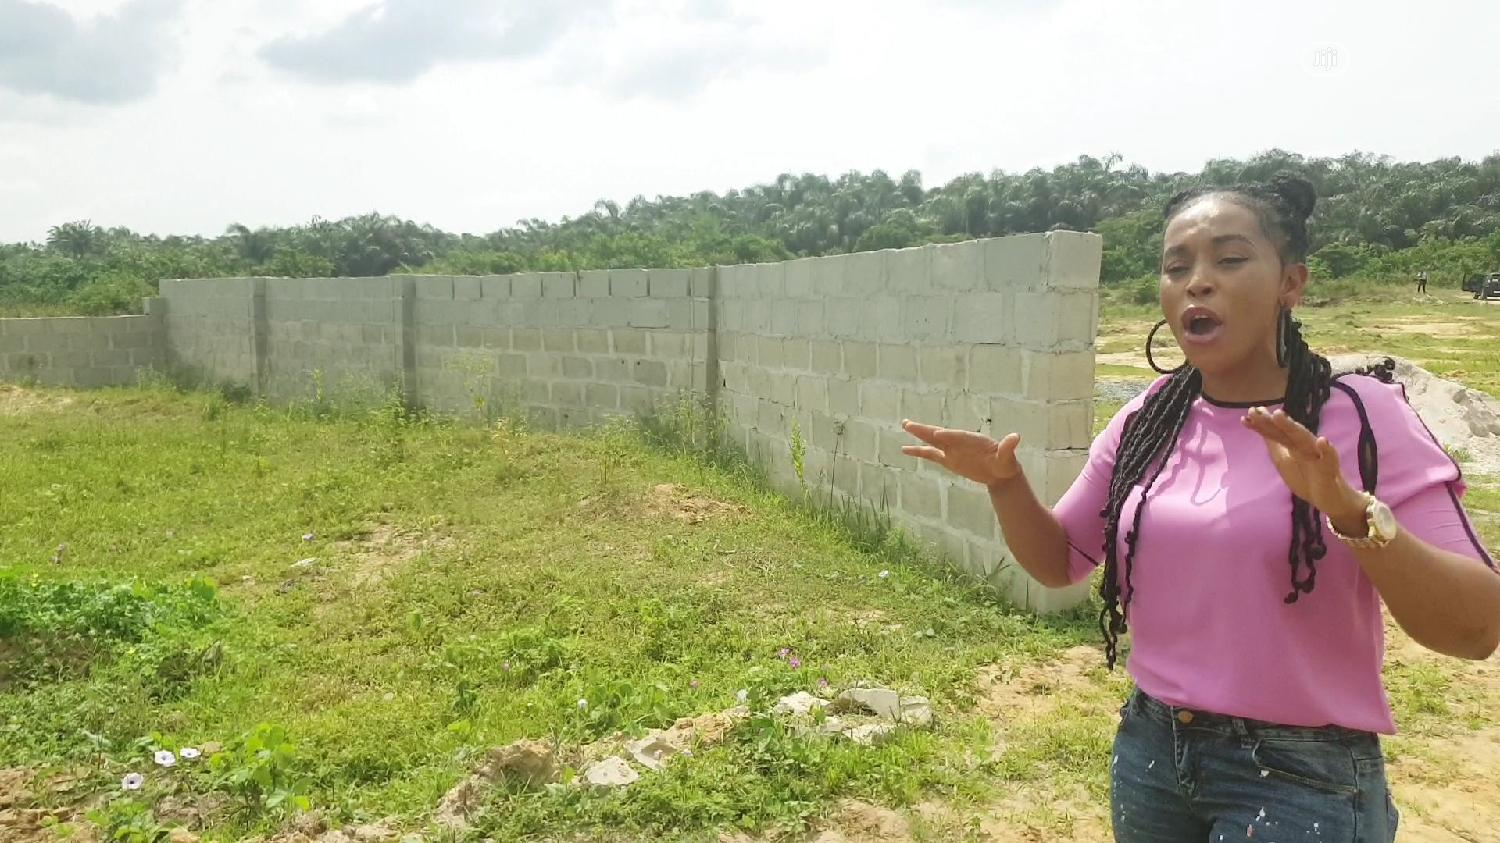 Mixed-use Land For Sale In Eleko Ibeju-lekki - 100% Dry Land | Land & Plots For Sale for sale in Eleko, Ibeju, Nigeria